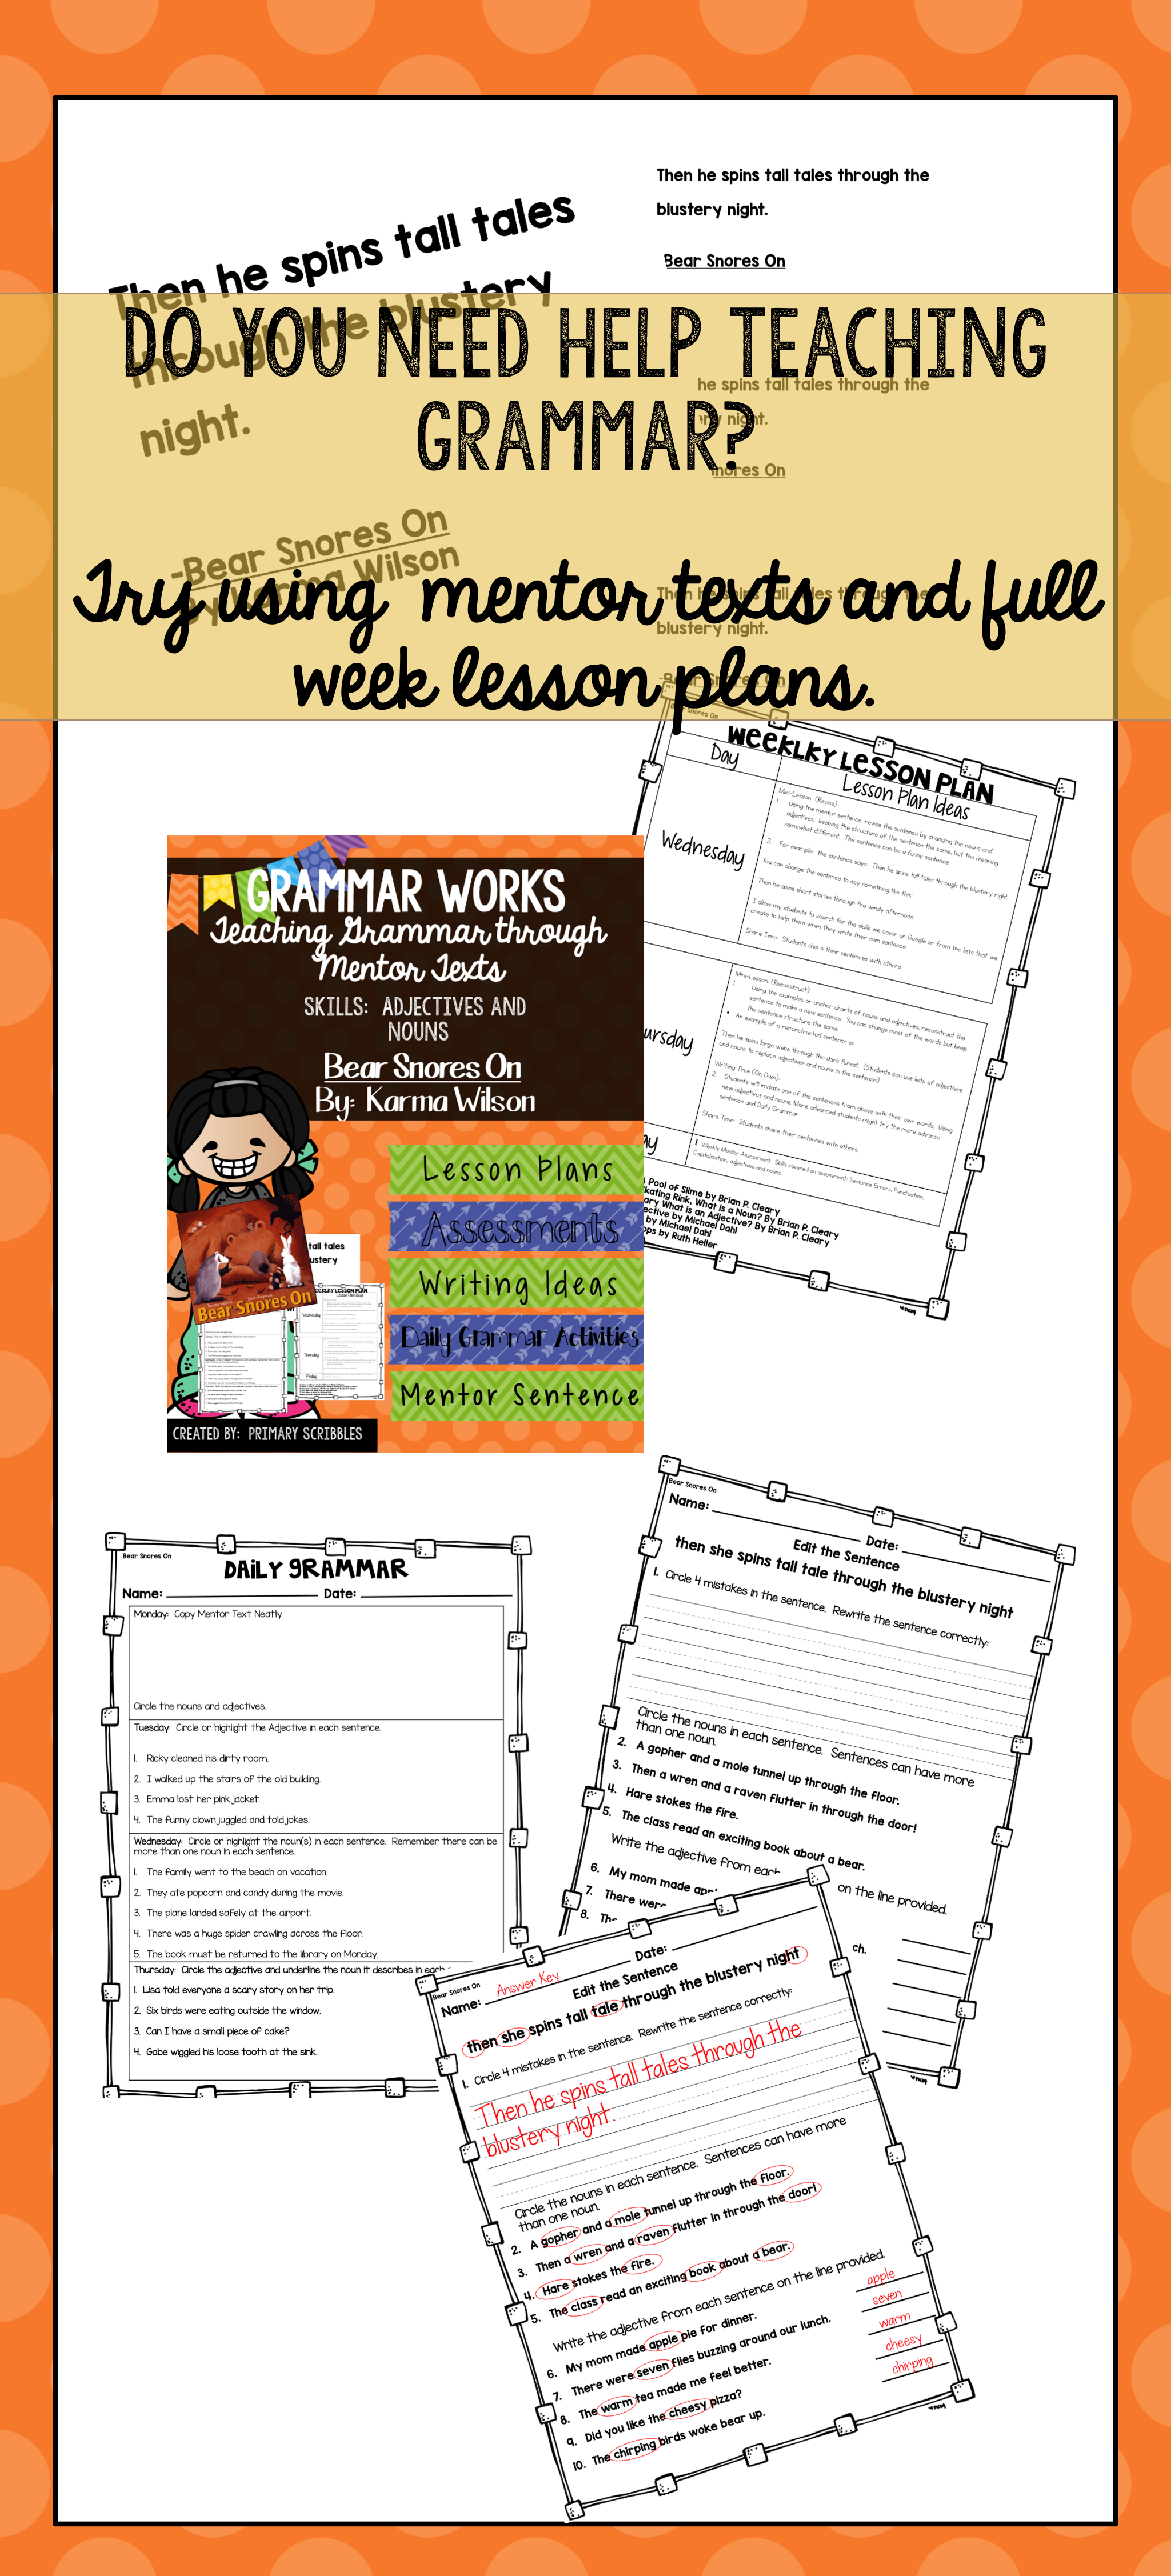 Grammar Works With Mentor Text Bear Snores On